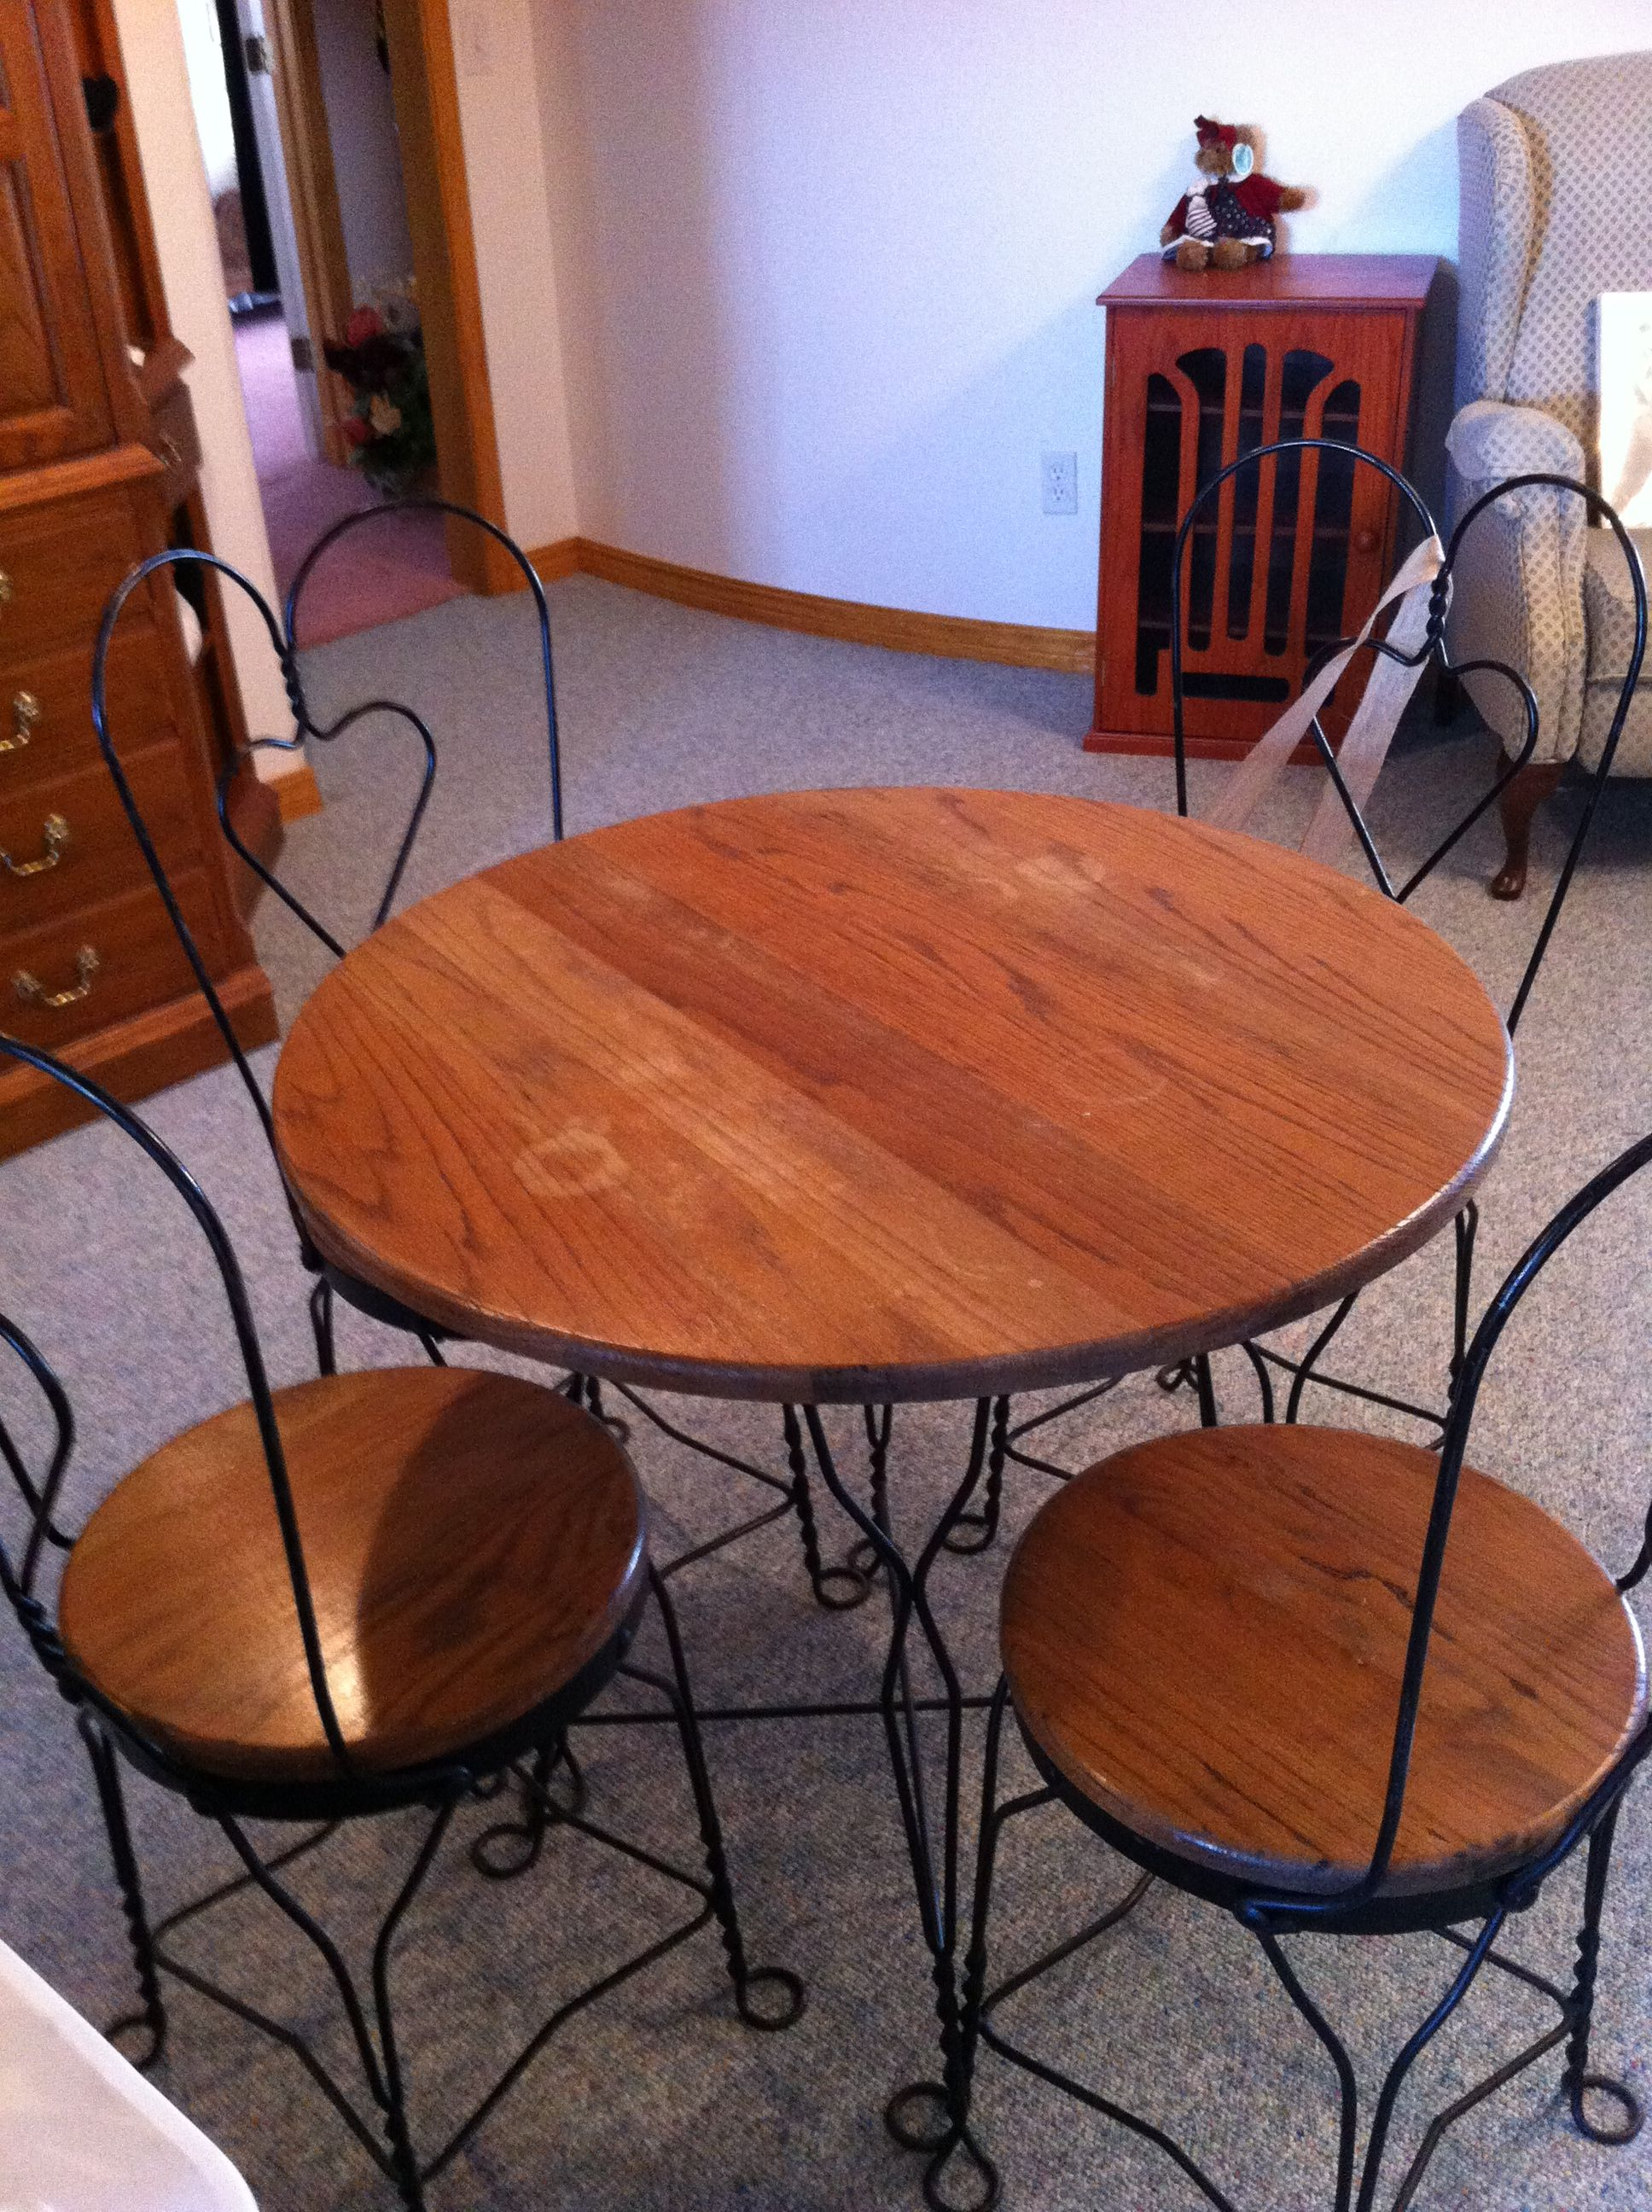 Estate Sale Dining Room Furniture Antique Ice Cream Parlor Table And Chair For Sale At The Barker